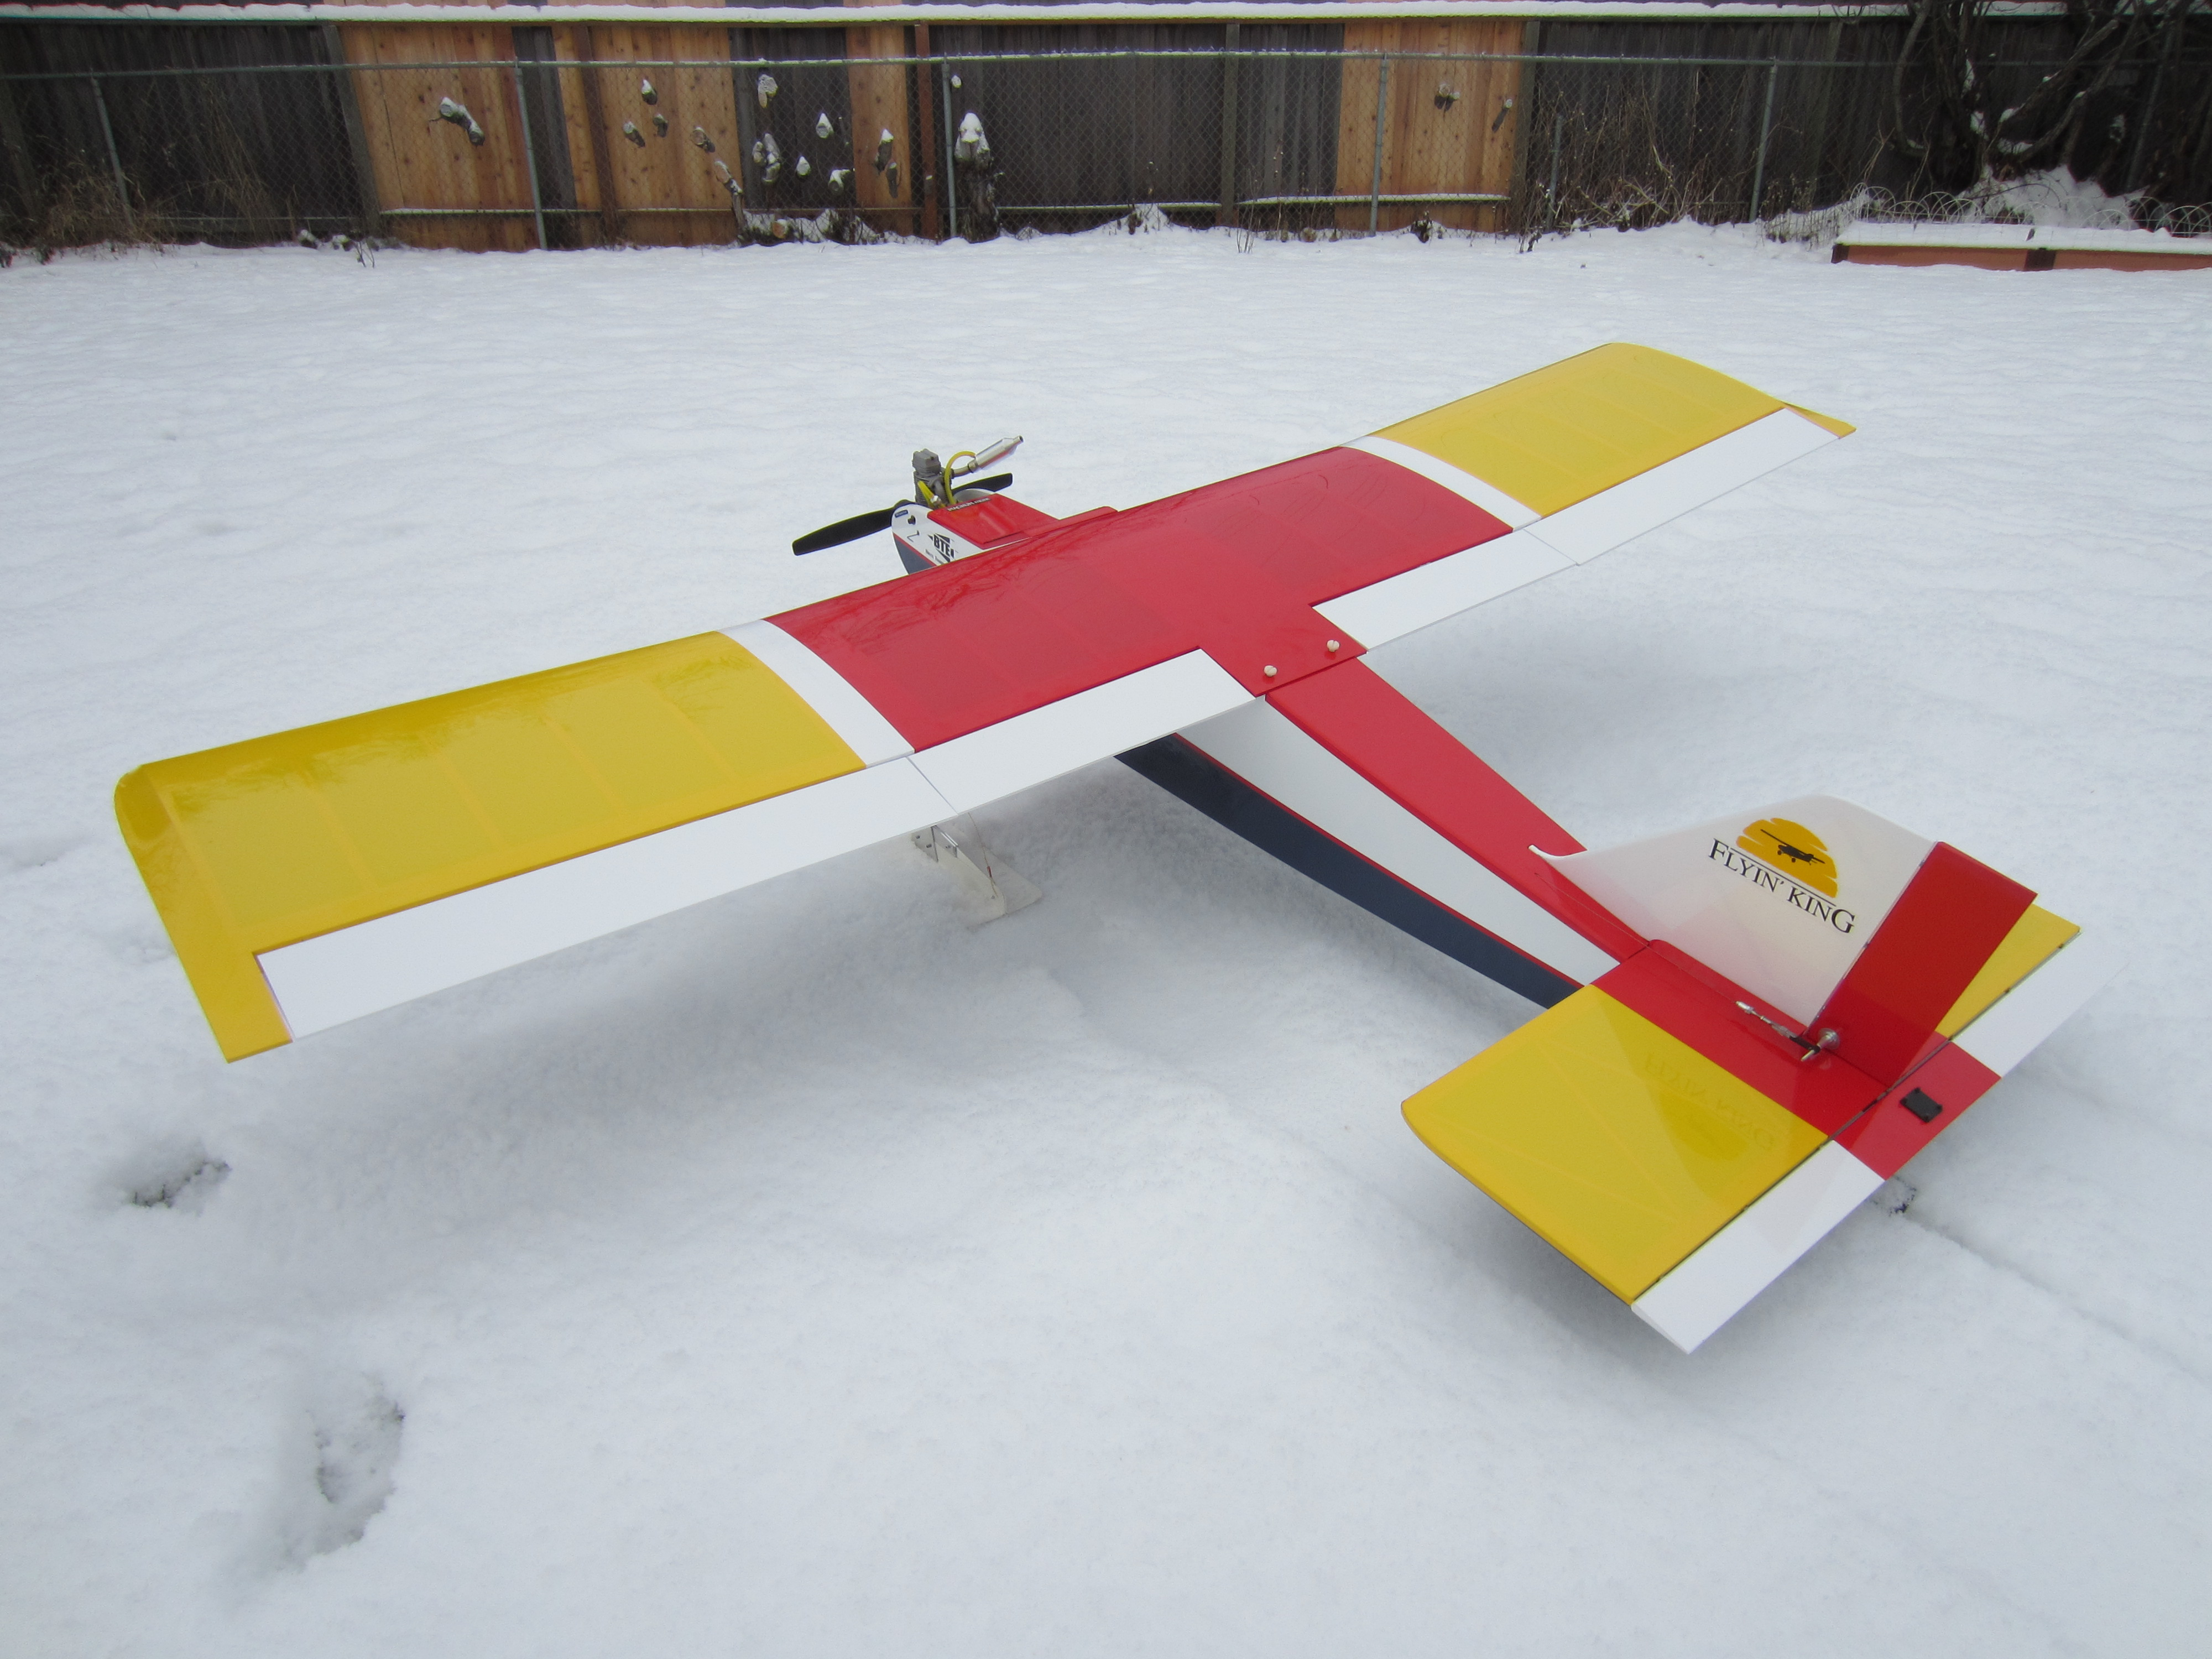 Click image for larger version  Name:Flyin' King 015.JPG Views:55 Size:1.98 MB ID:2171251